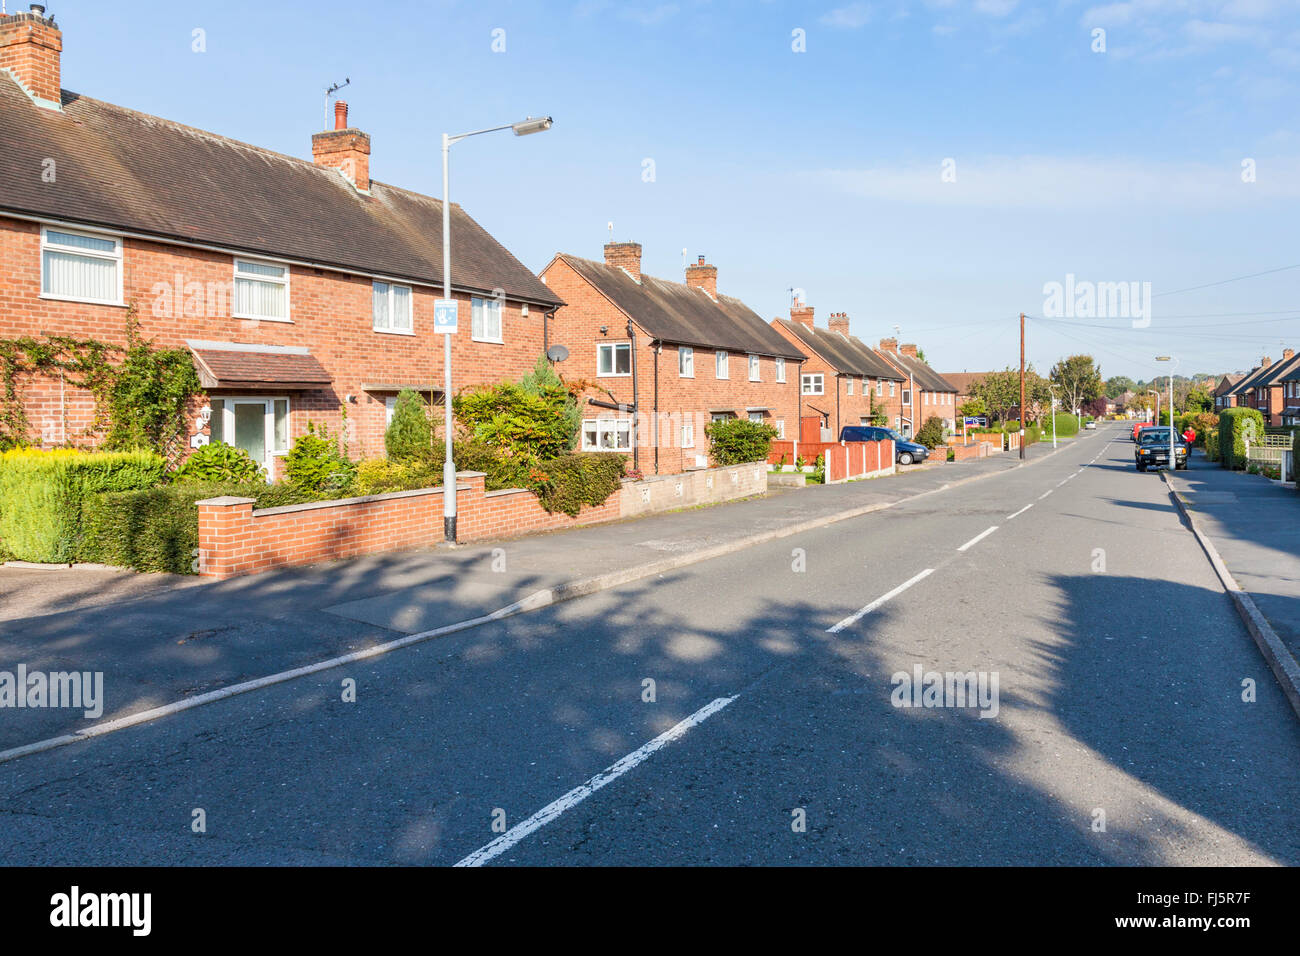 Housing on a typical 1950s Council estate in the village of Ruddington, Nottinghamshire, England, UK - Stock Image